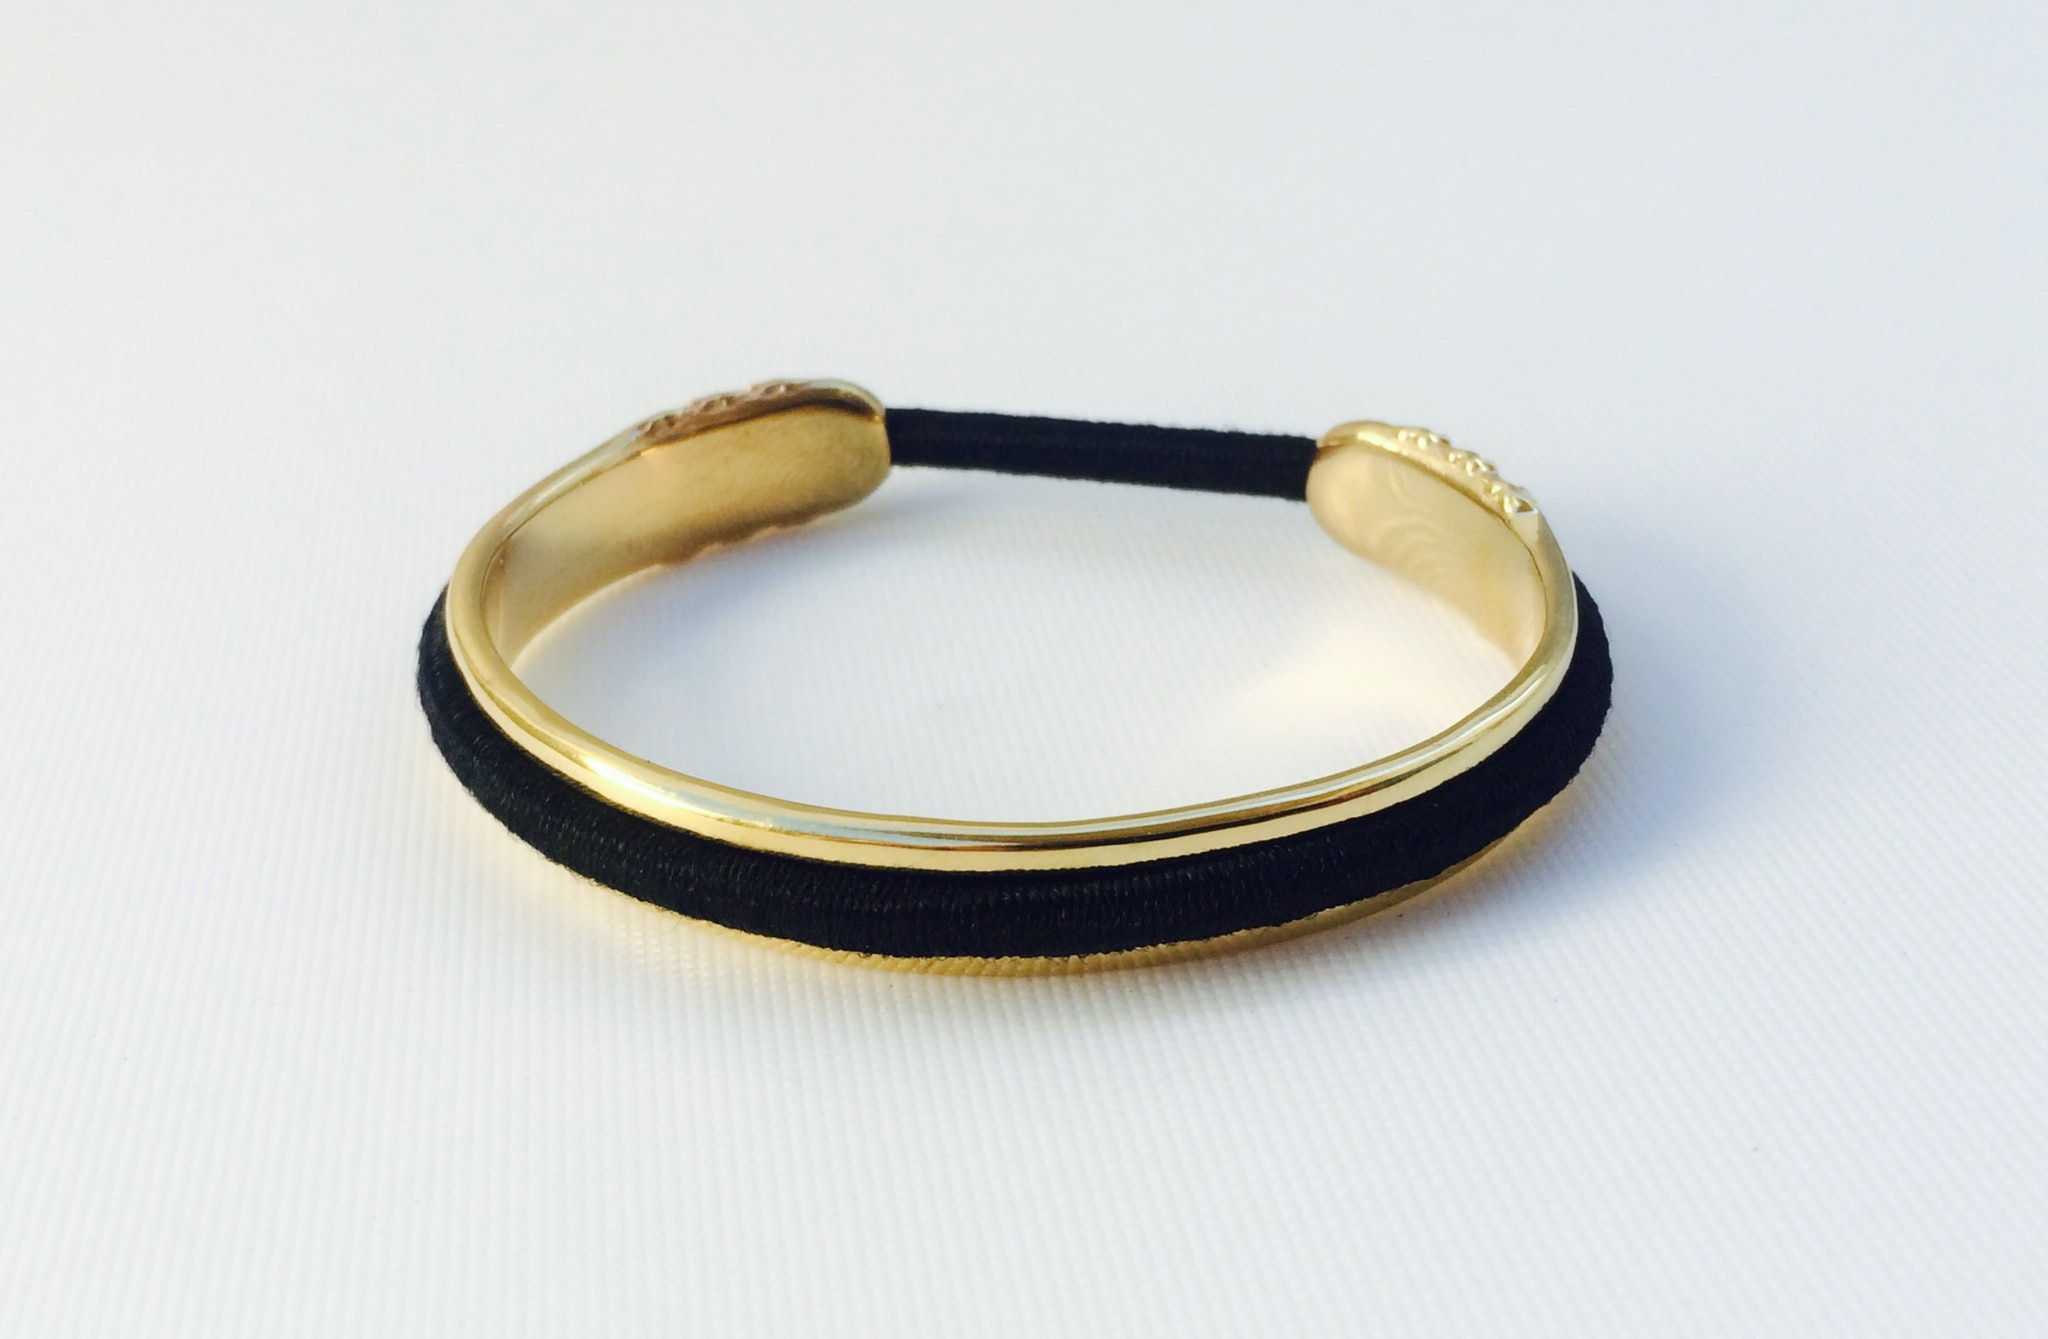 BitterSweet Jewelry s Bracelet Has A Built-In Hair Tie Holder And It s  Going To Change Your Life Forever 21f9bb12888